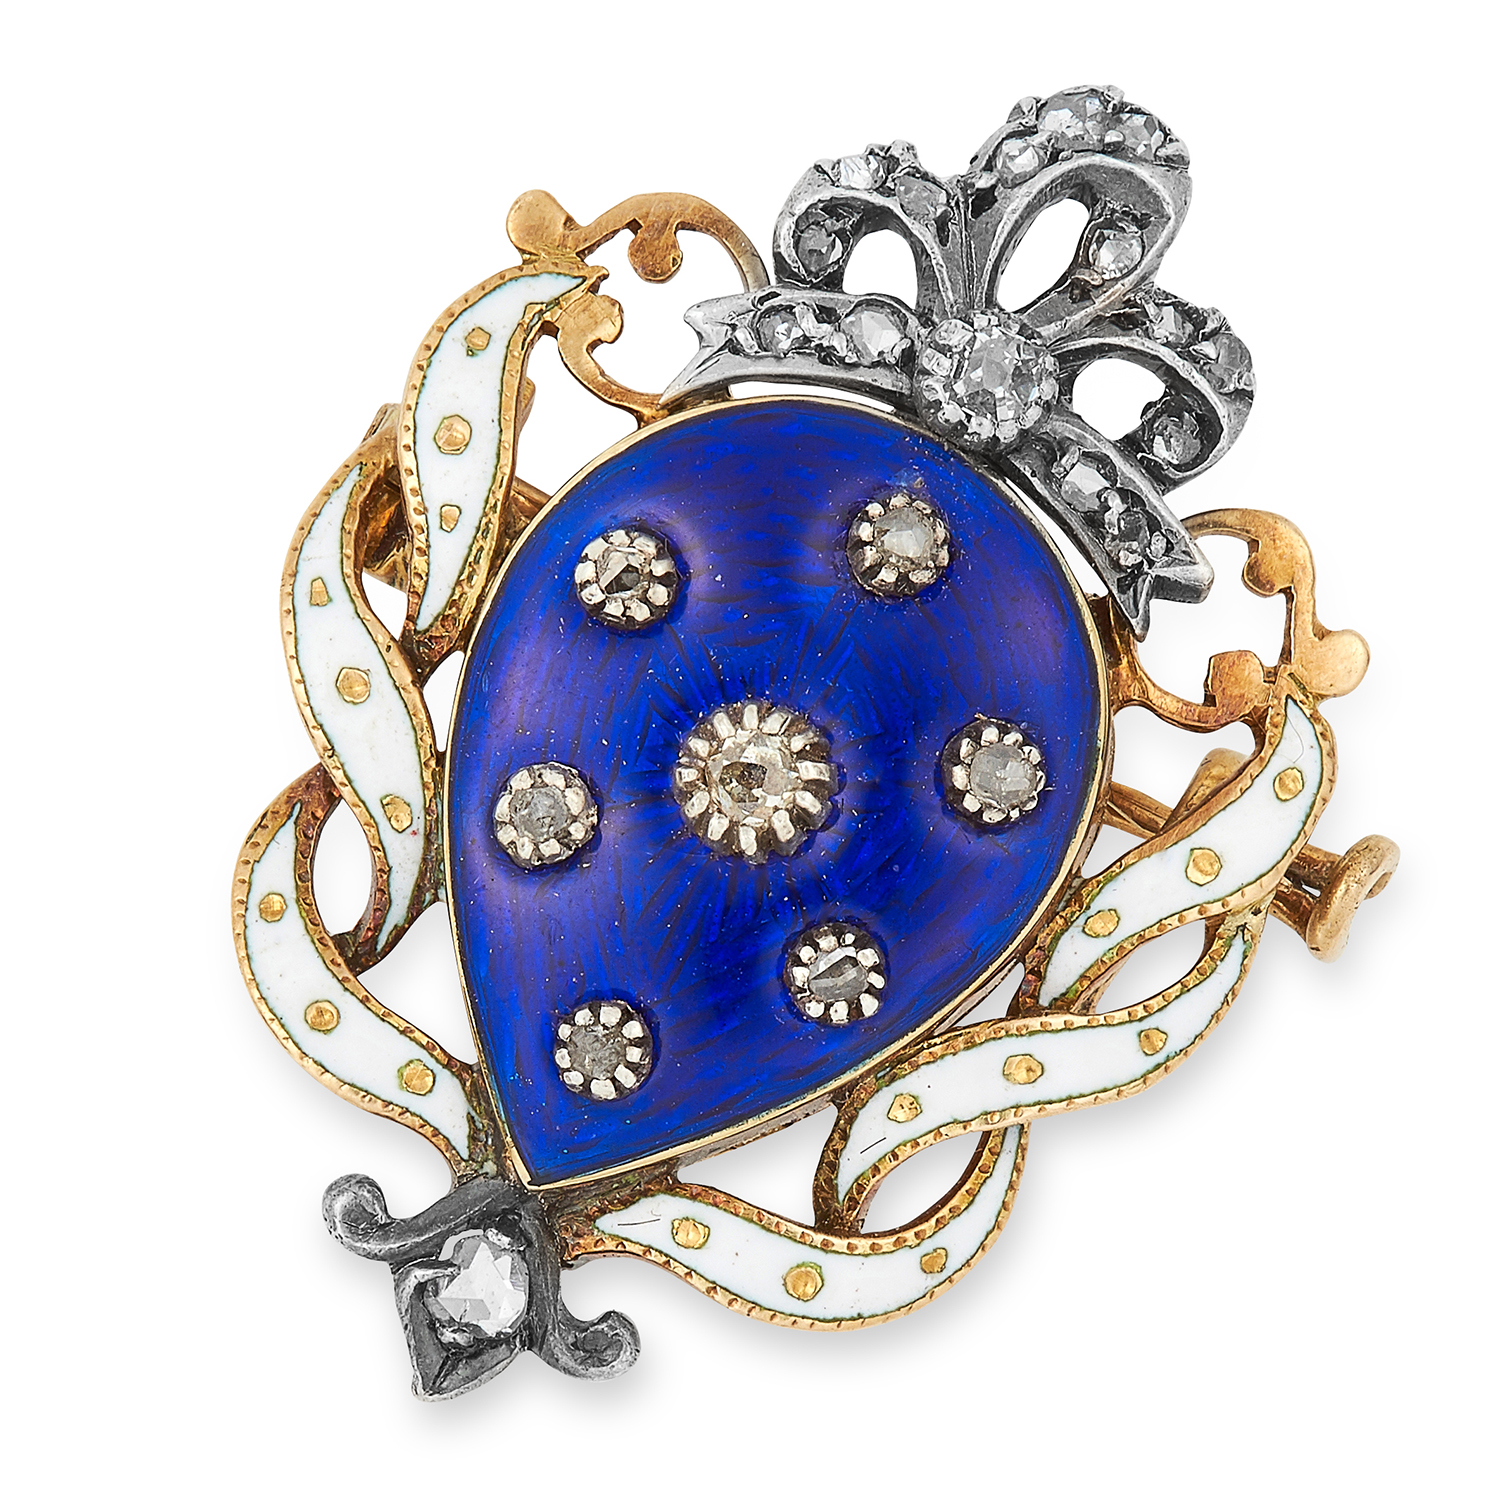 Los 5 - ANTIQUE DIAMOND AND ENAMEL BROOCH set with blue and white enamel and rose cut diamonds, 3cm, 7g.